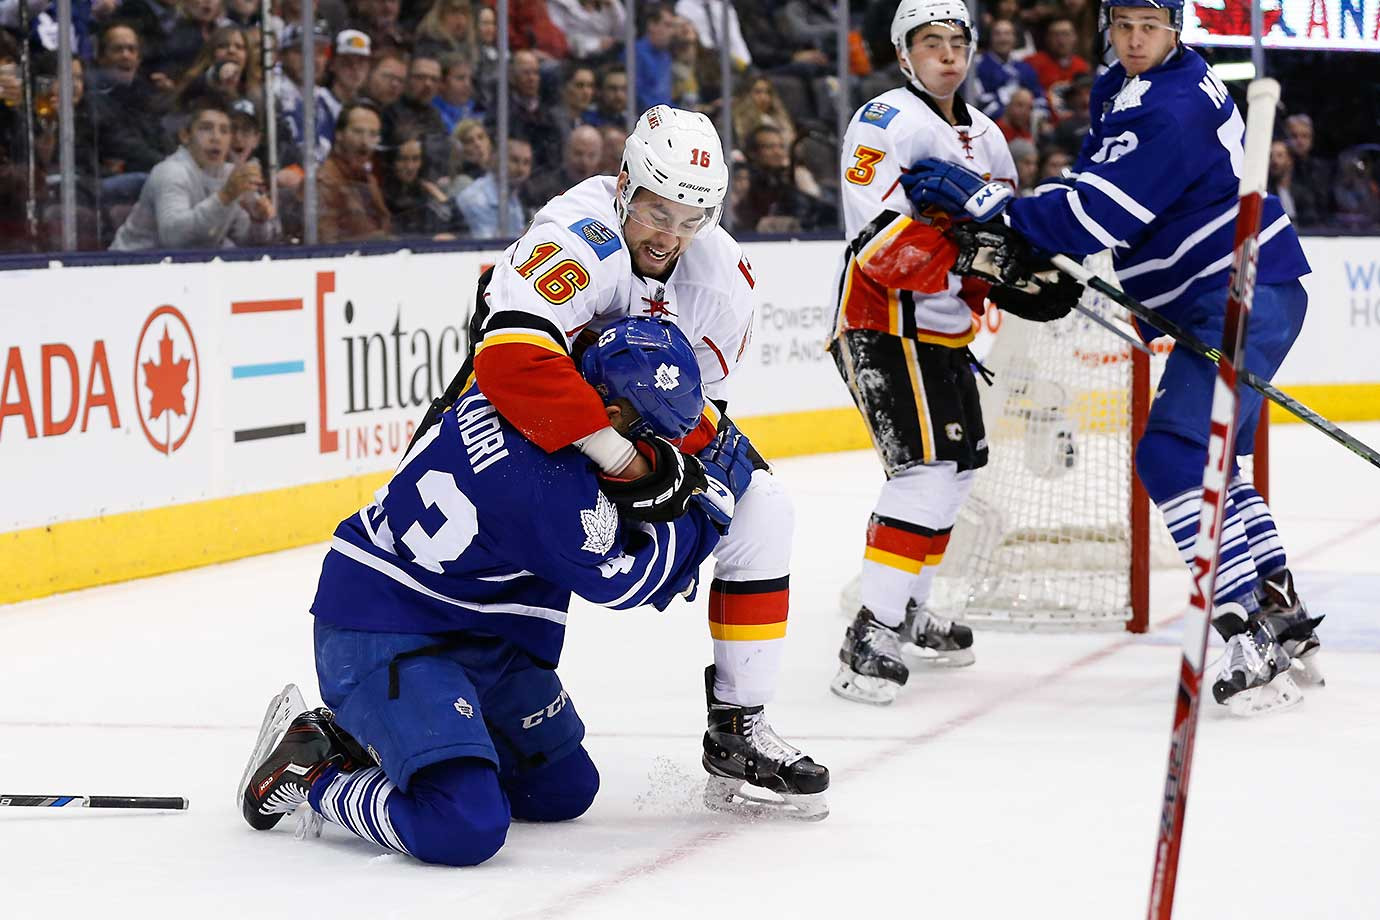 Calgary's Josh Jooris puts Toronto Maple Leafs center Nazem Kadri into a headlock.